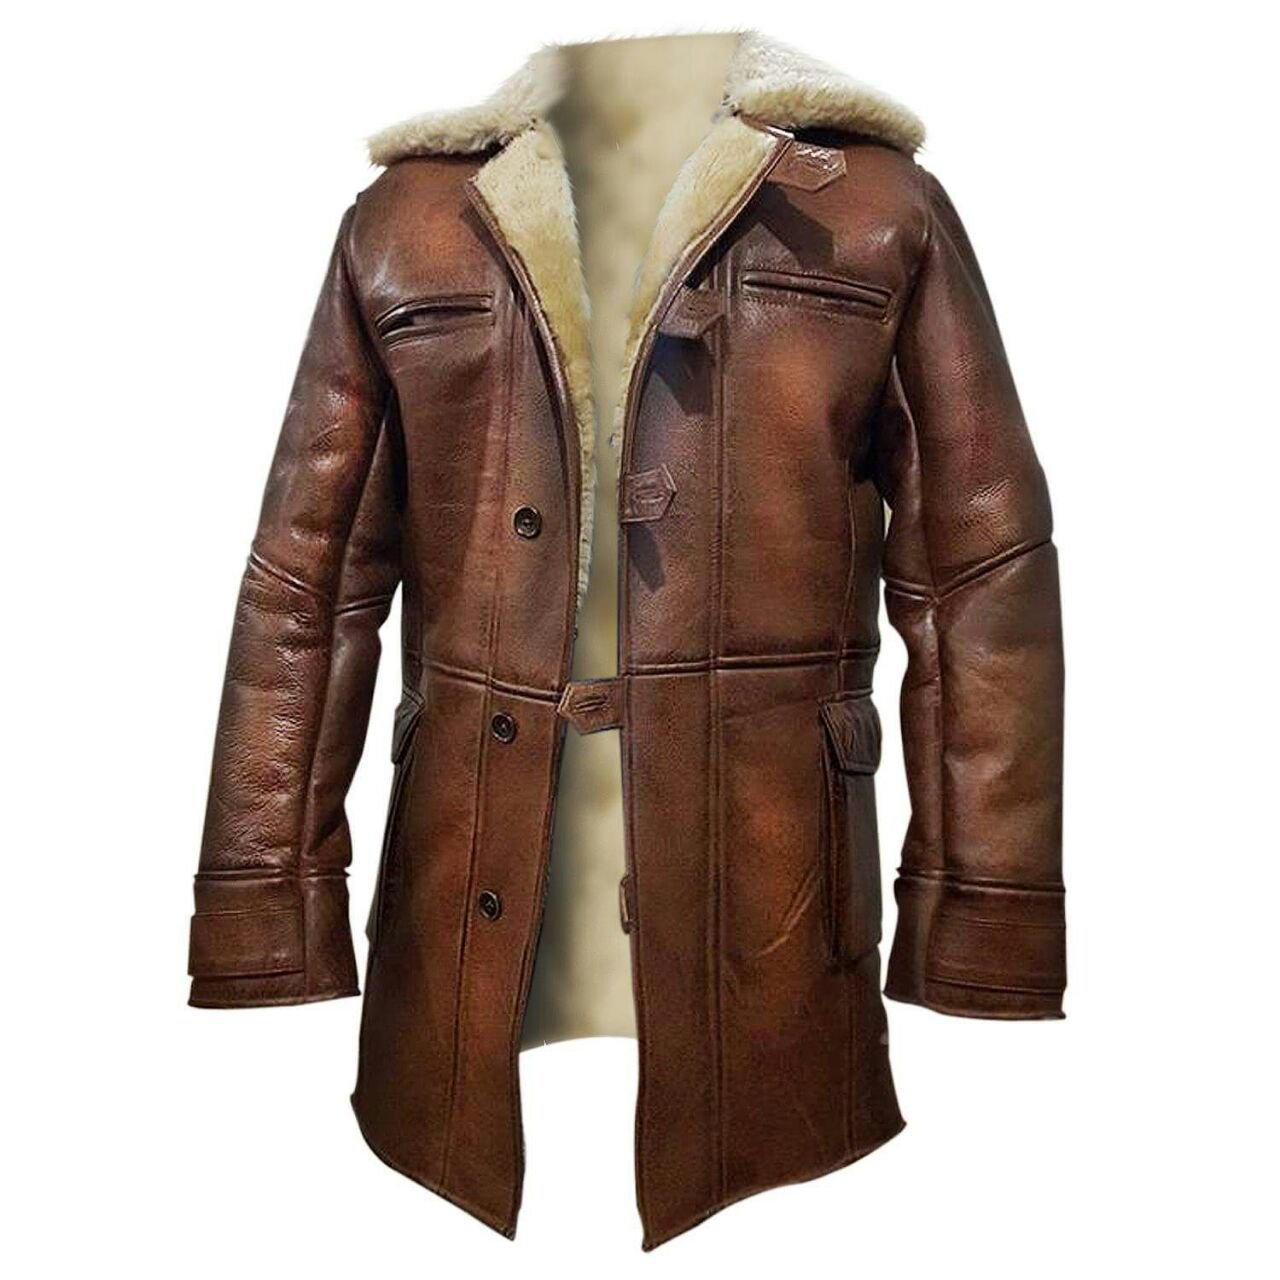 NM Fashions Tom Hardy Bane Dark Knight Lambskin Shearling Genuine Leather Pea Coat (Large, 100% Hi-Quality Synthetic Leather with Off-White Fur Lining)